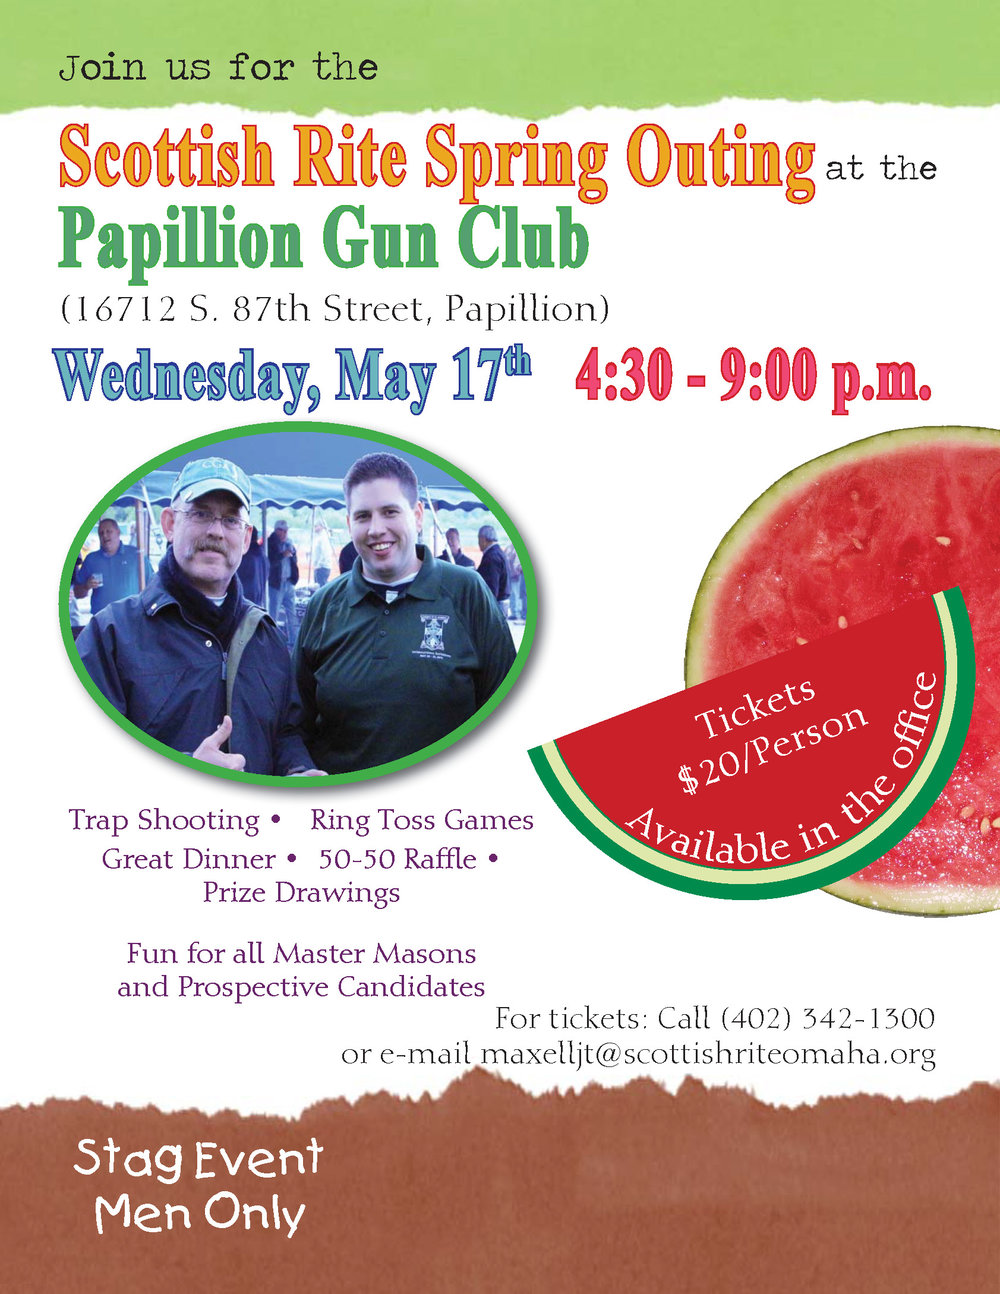 Click above image to download PDF of the Spring Outing flier.